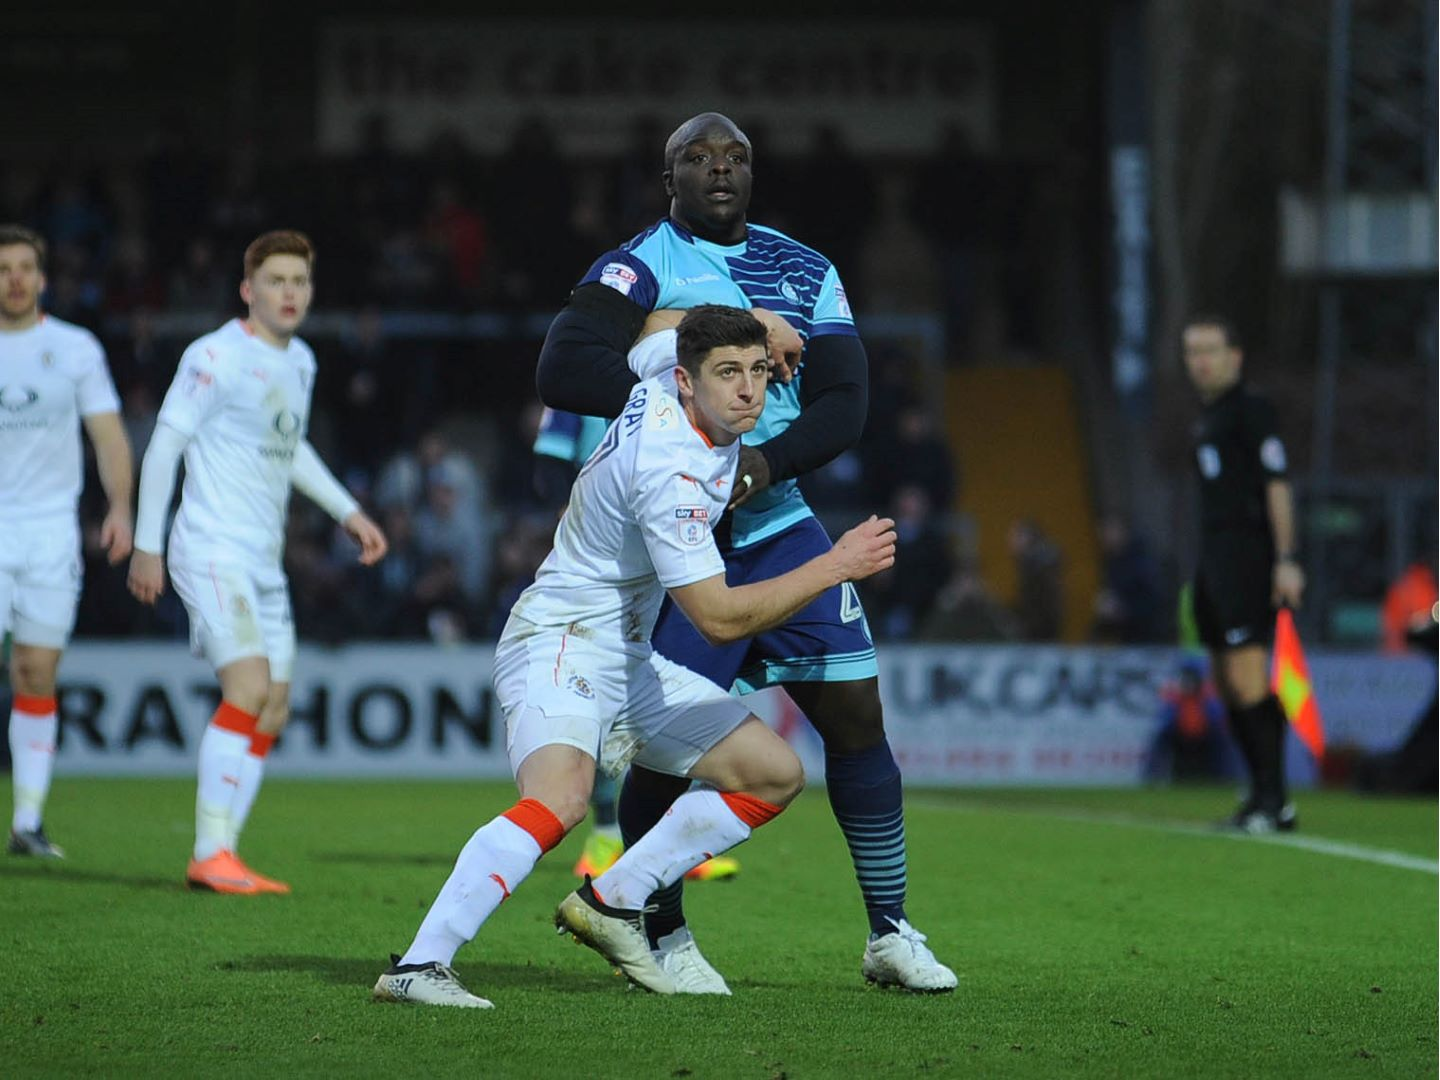 Jake Gray came up against Wycombe's Adebayo Akinfenwa in one of his 11 starts